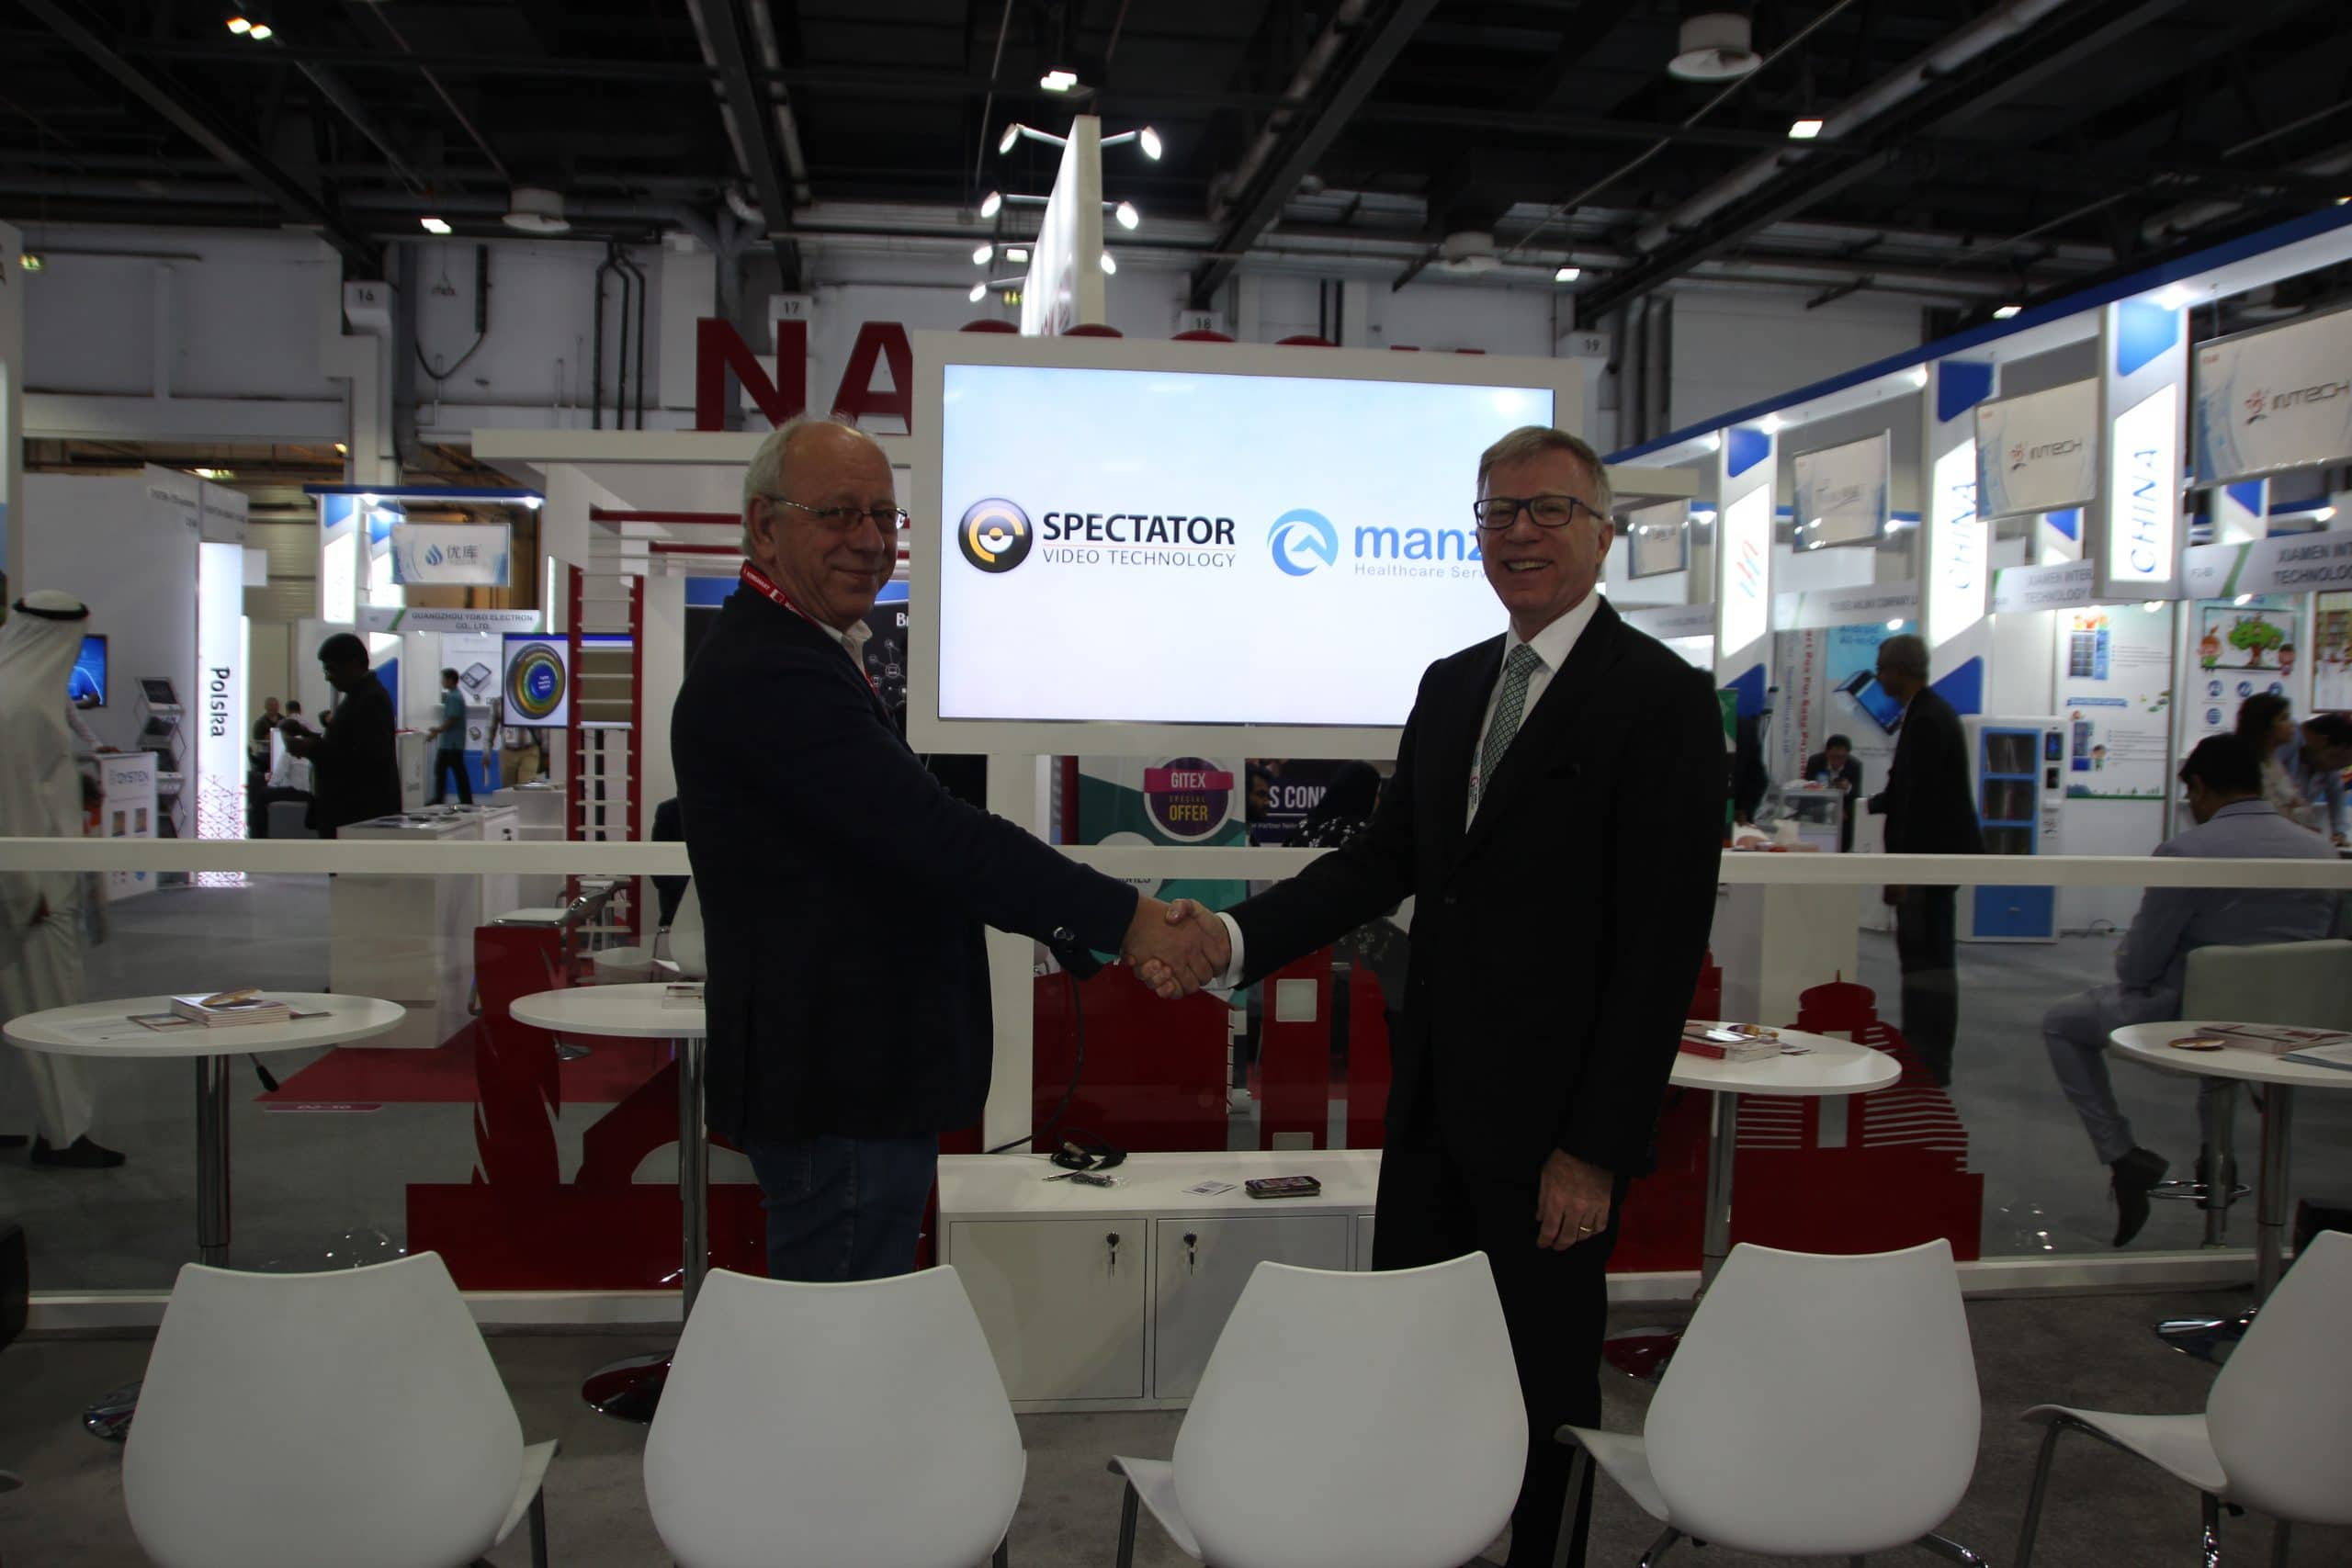 manzil and spectator video technology representatives shaking hands during a photo op